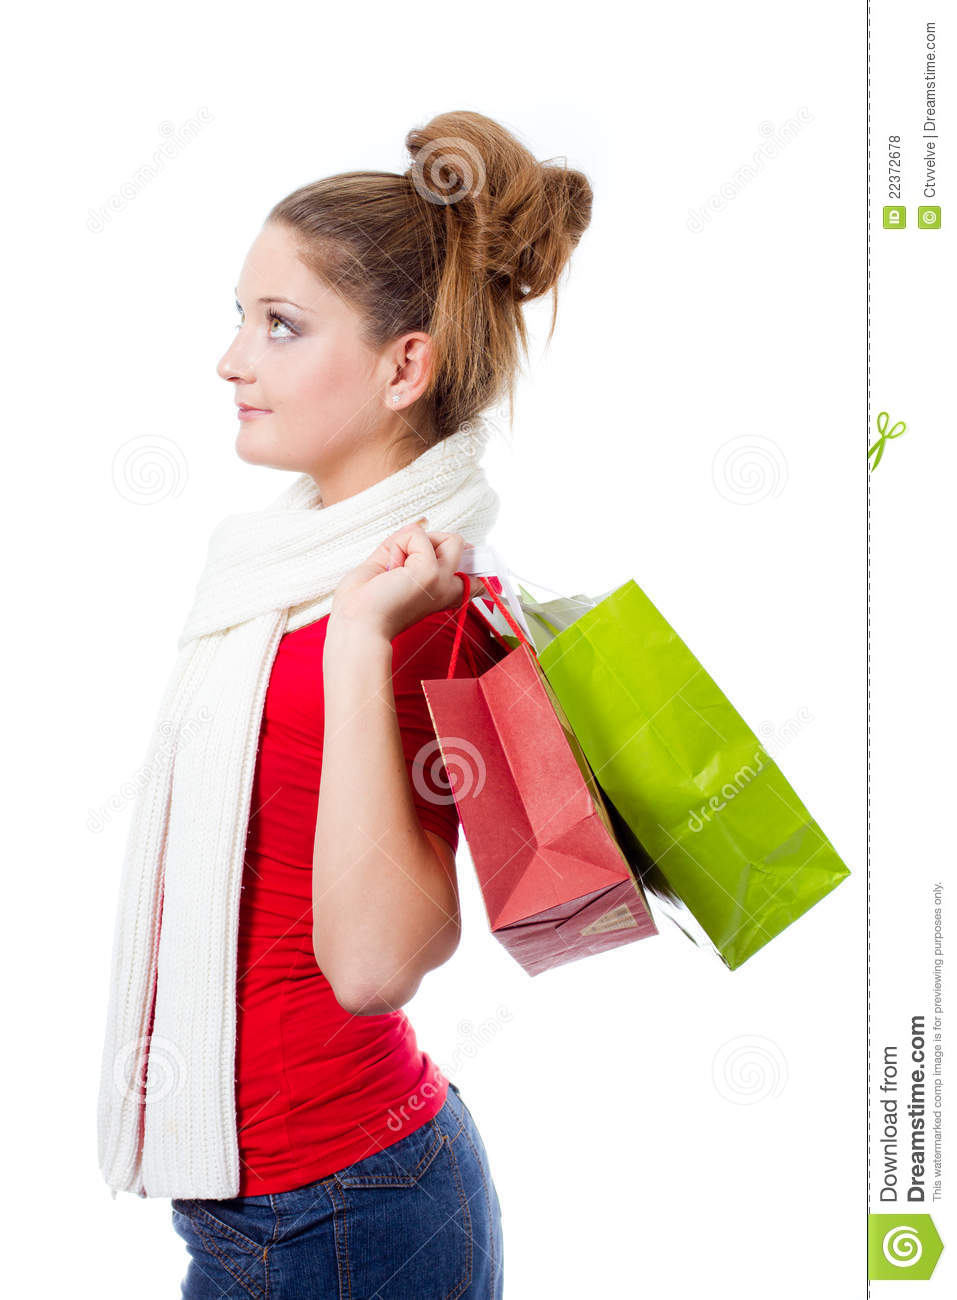 Innovative Woman Holding Shopping Bags Stock Picture I1628053 At FeaturePics